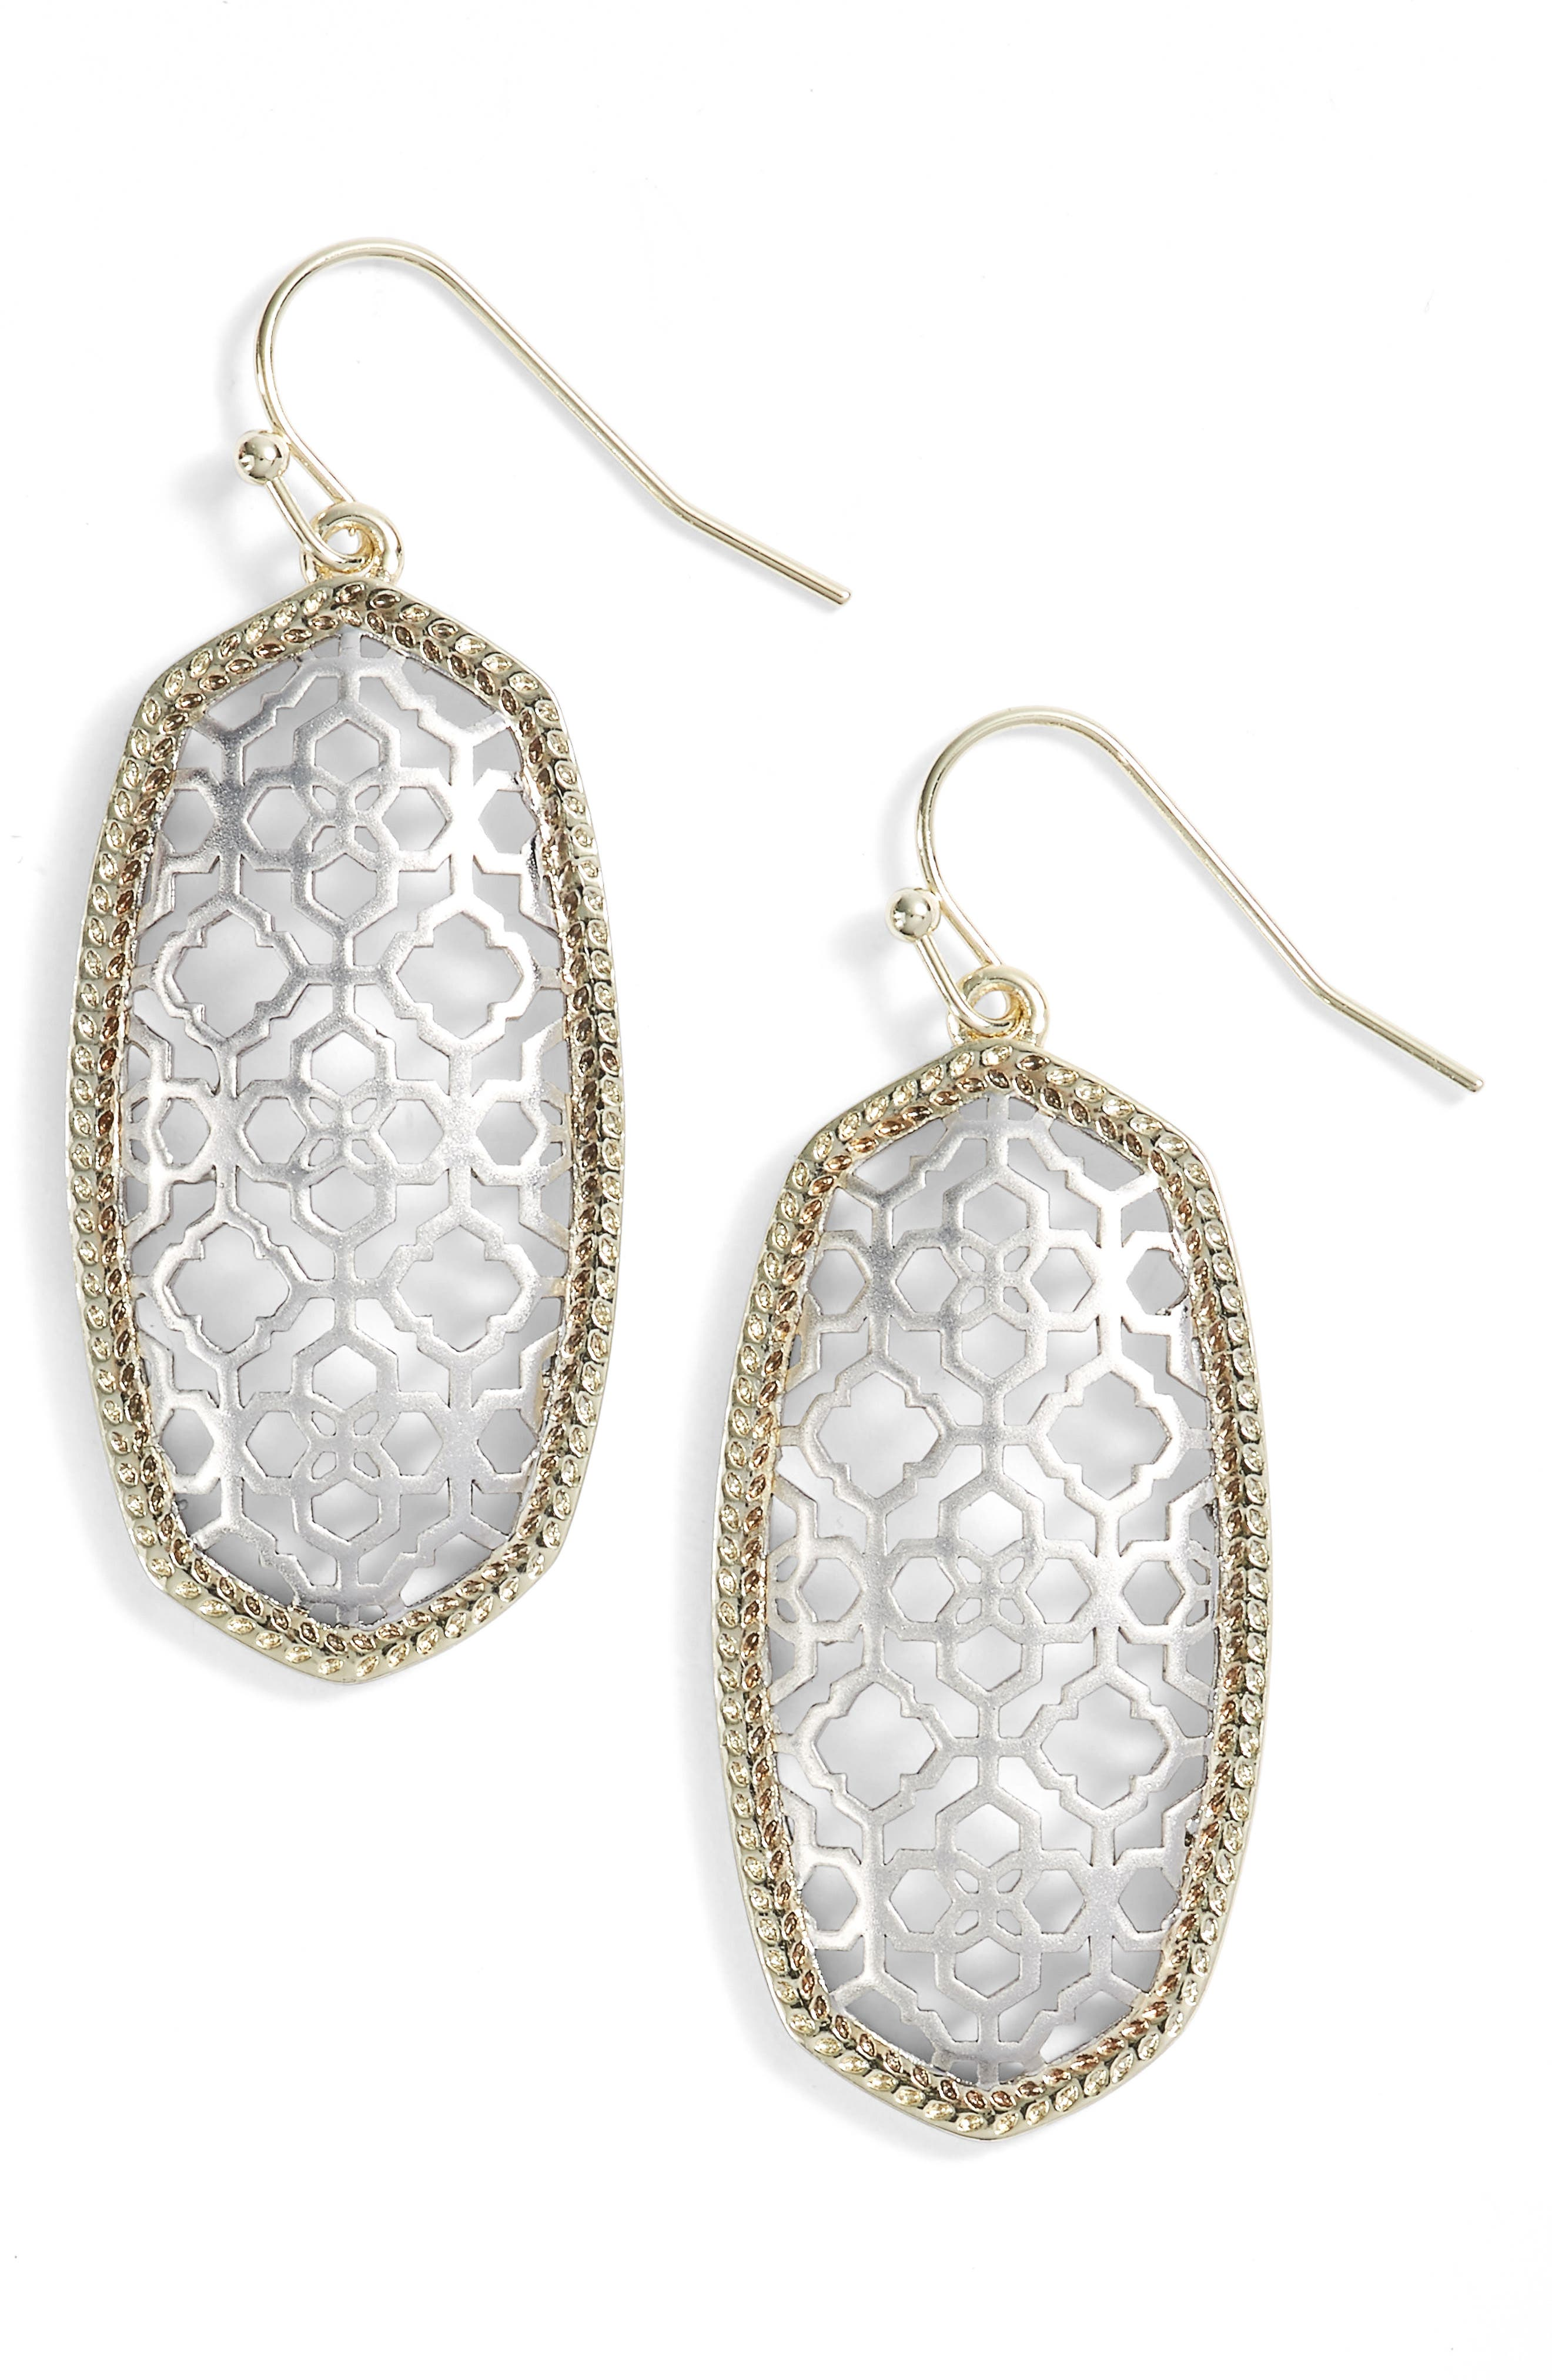 Kendra Scott Elle Openwork Drop Earrings